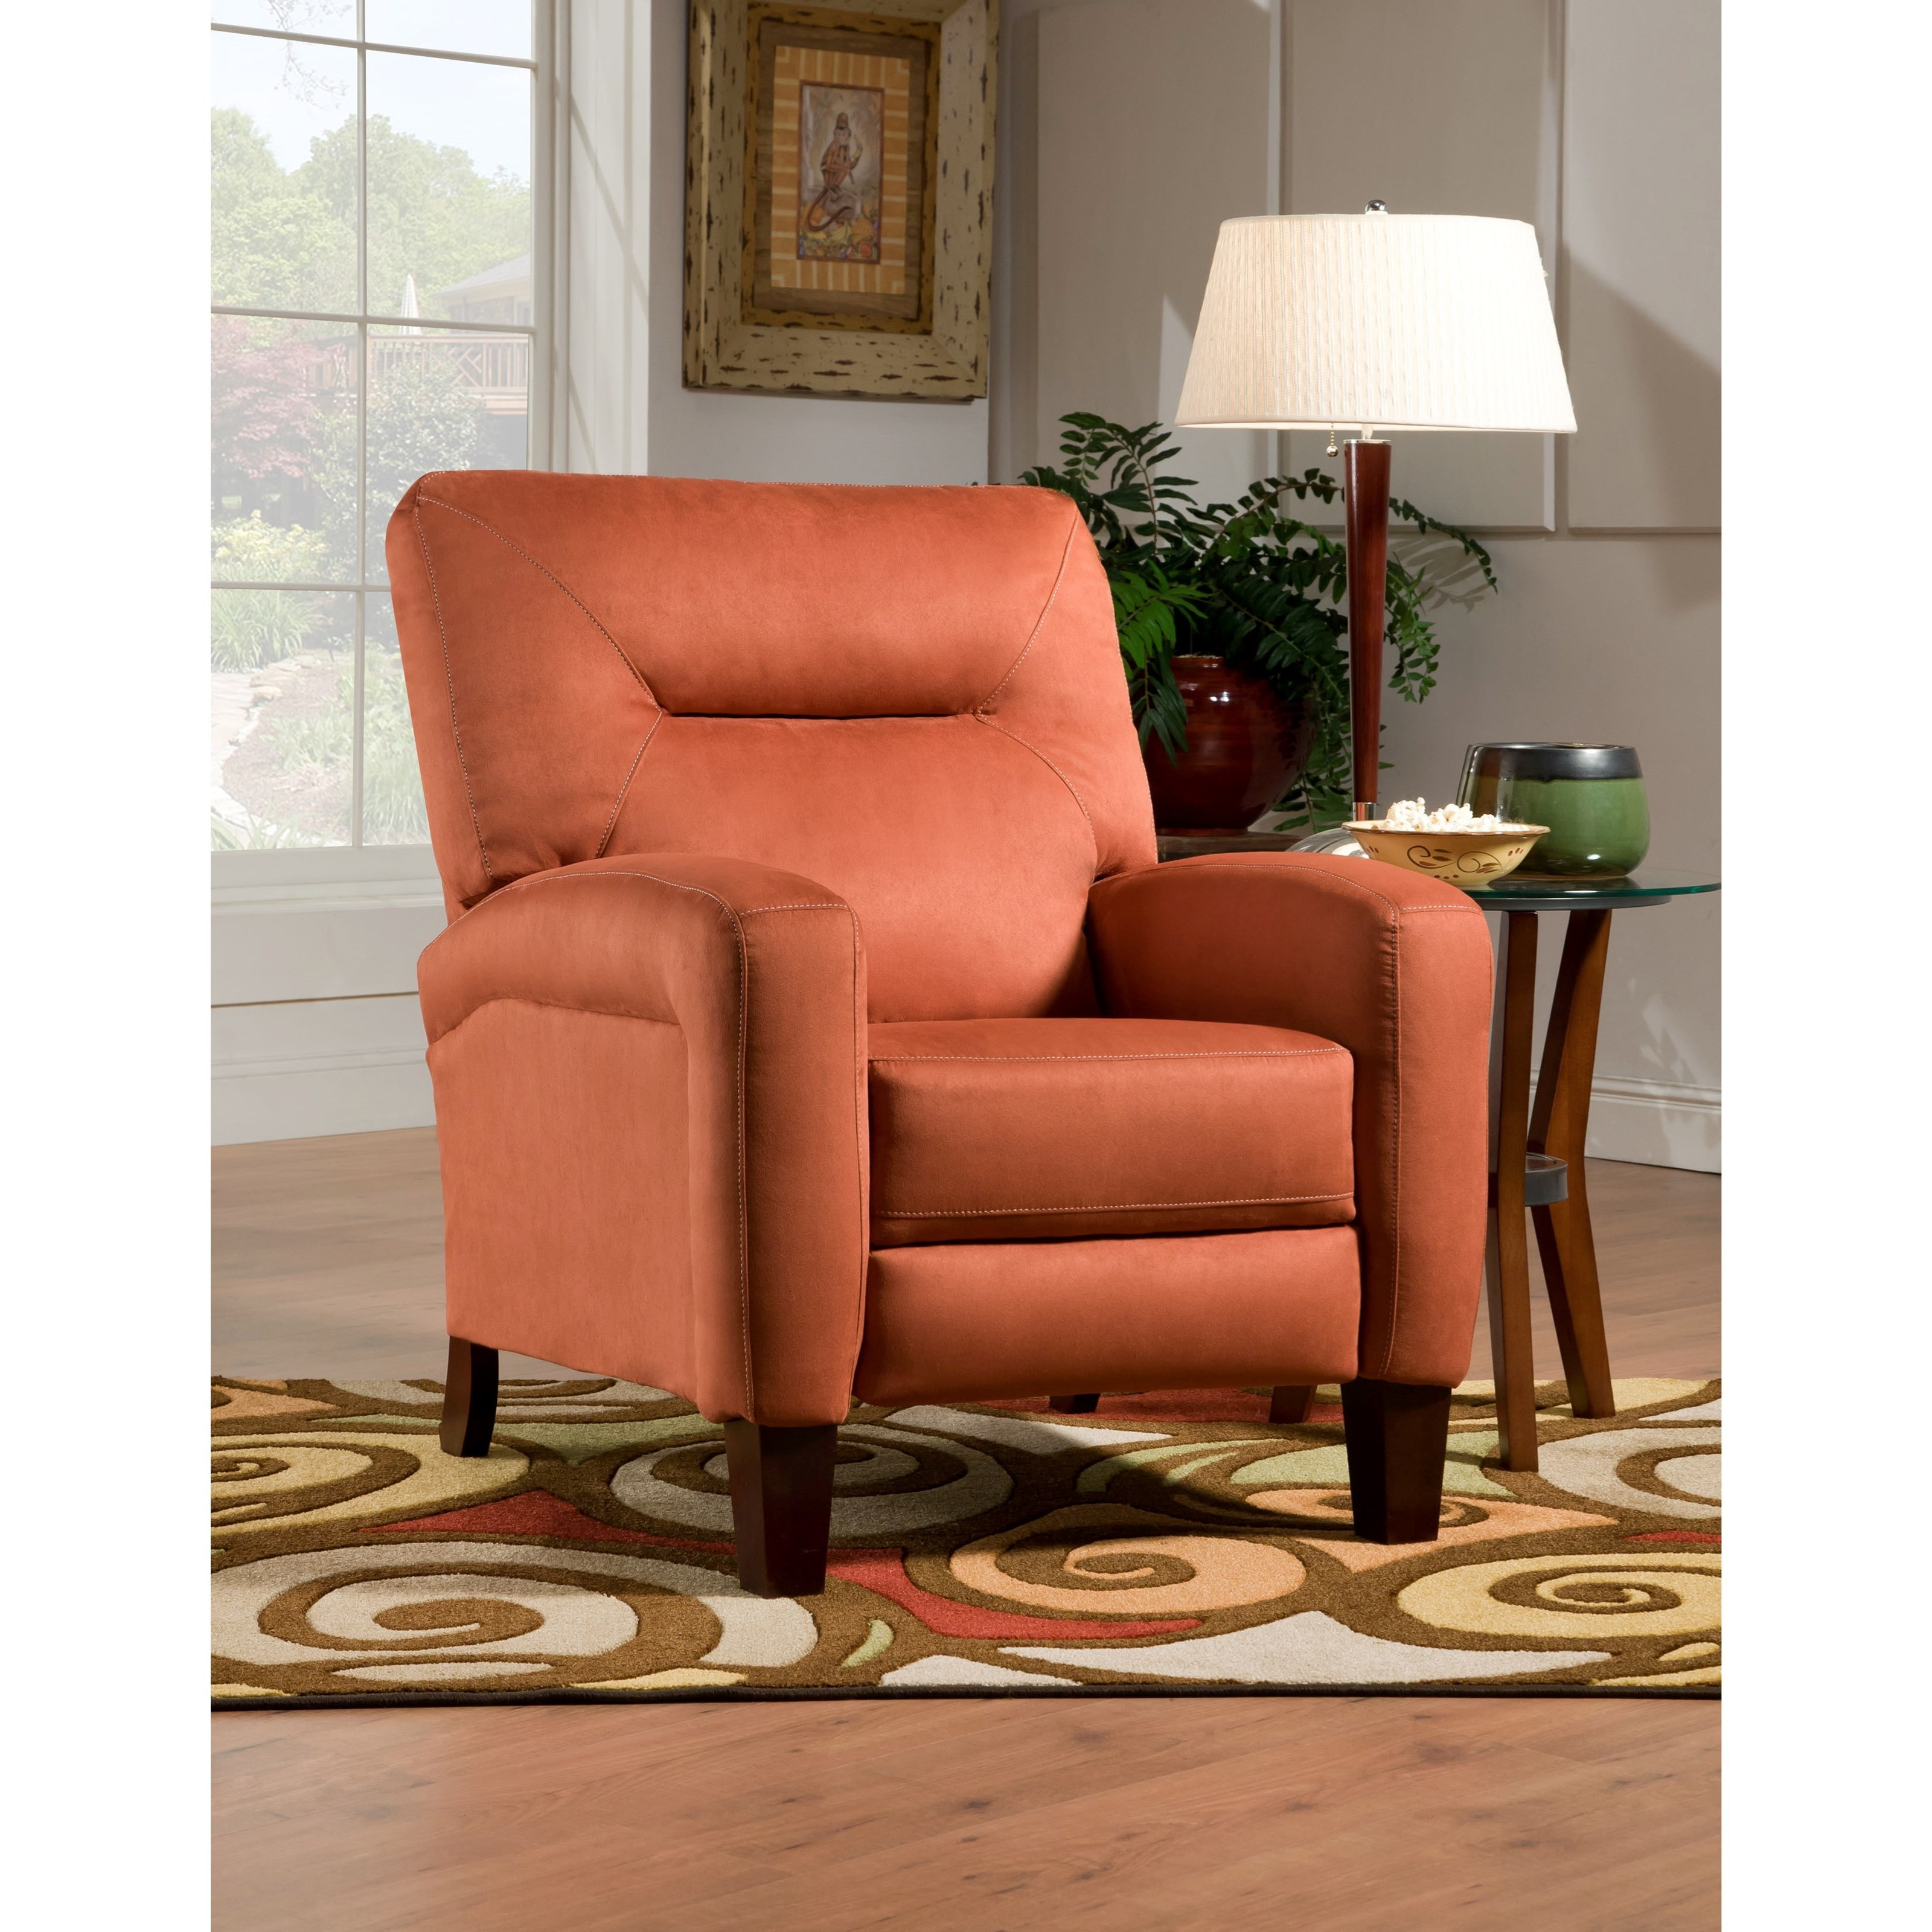 SoHo Power Plus High-Leg Recliner by Southern Motion at Sparks HomeStore